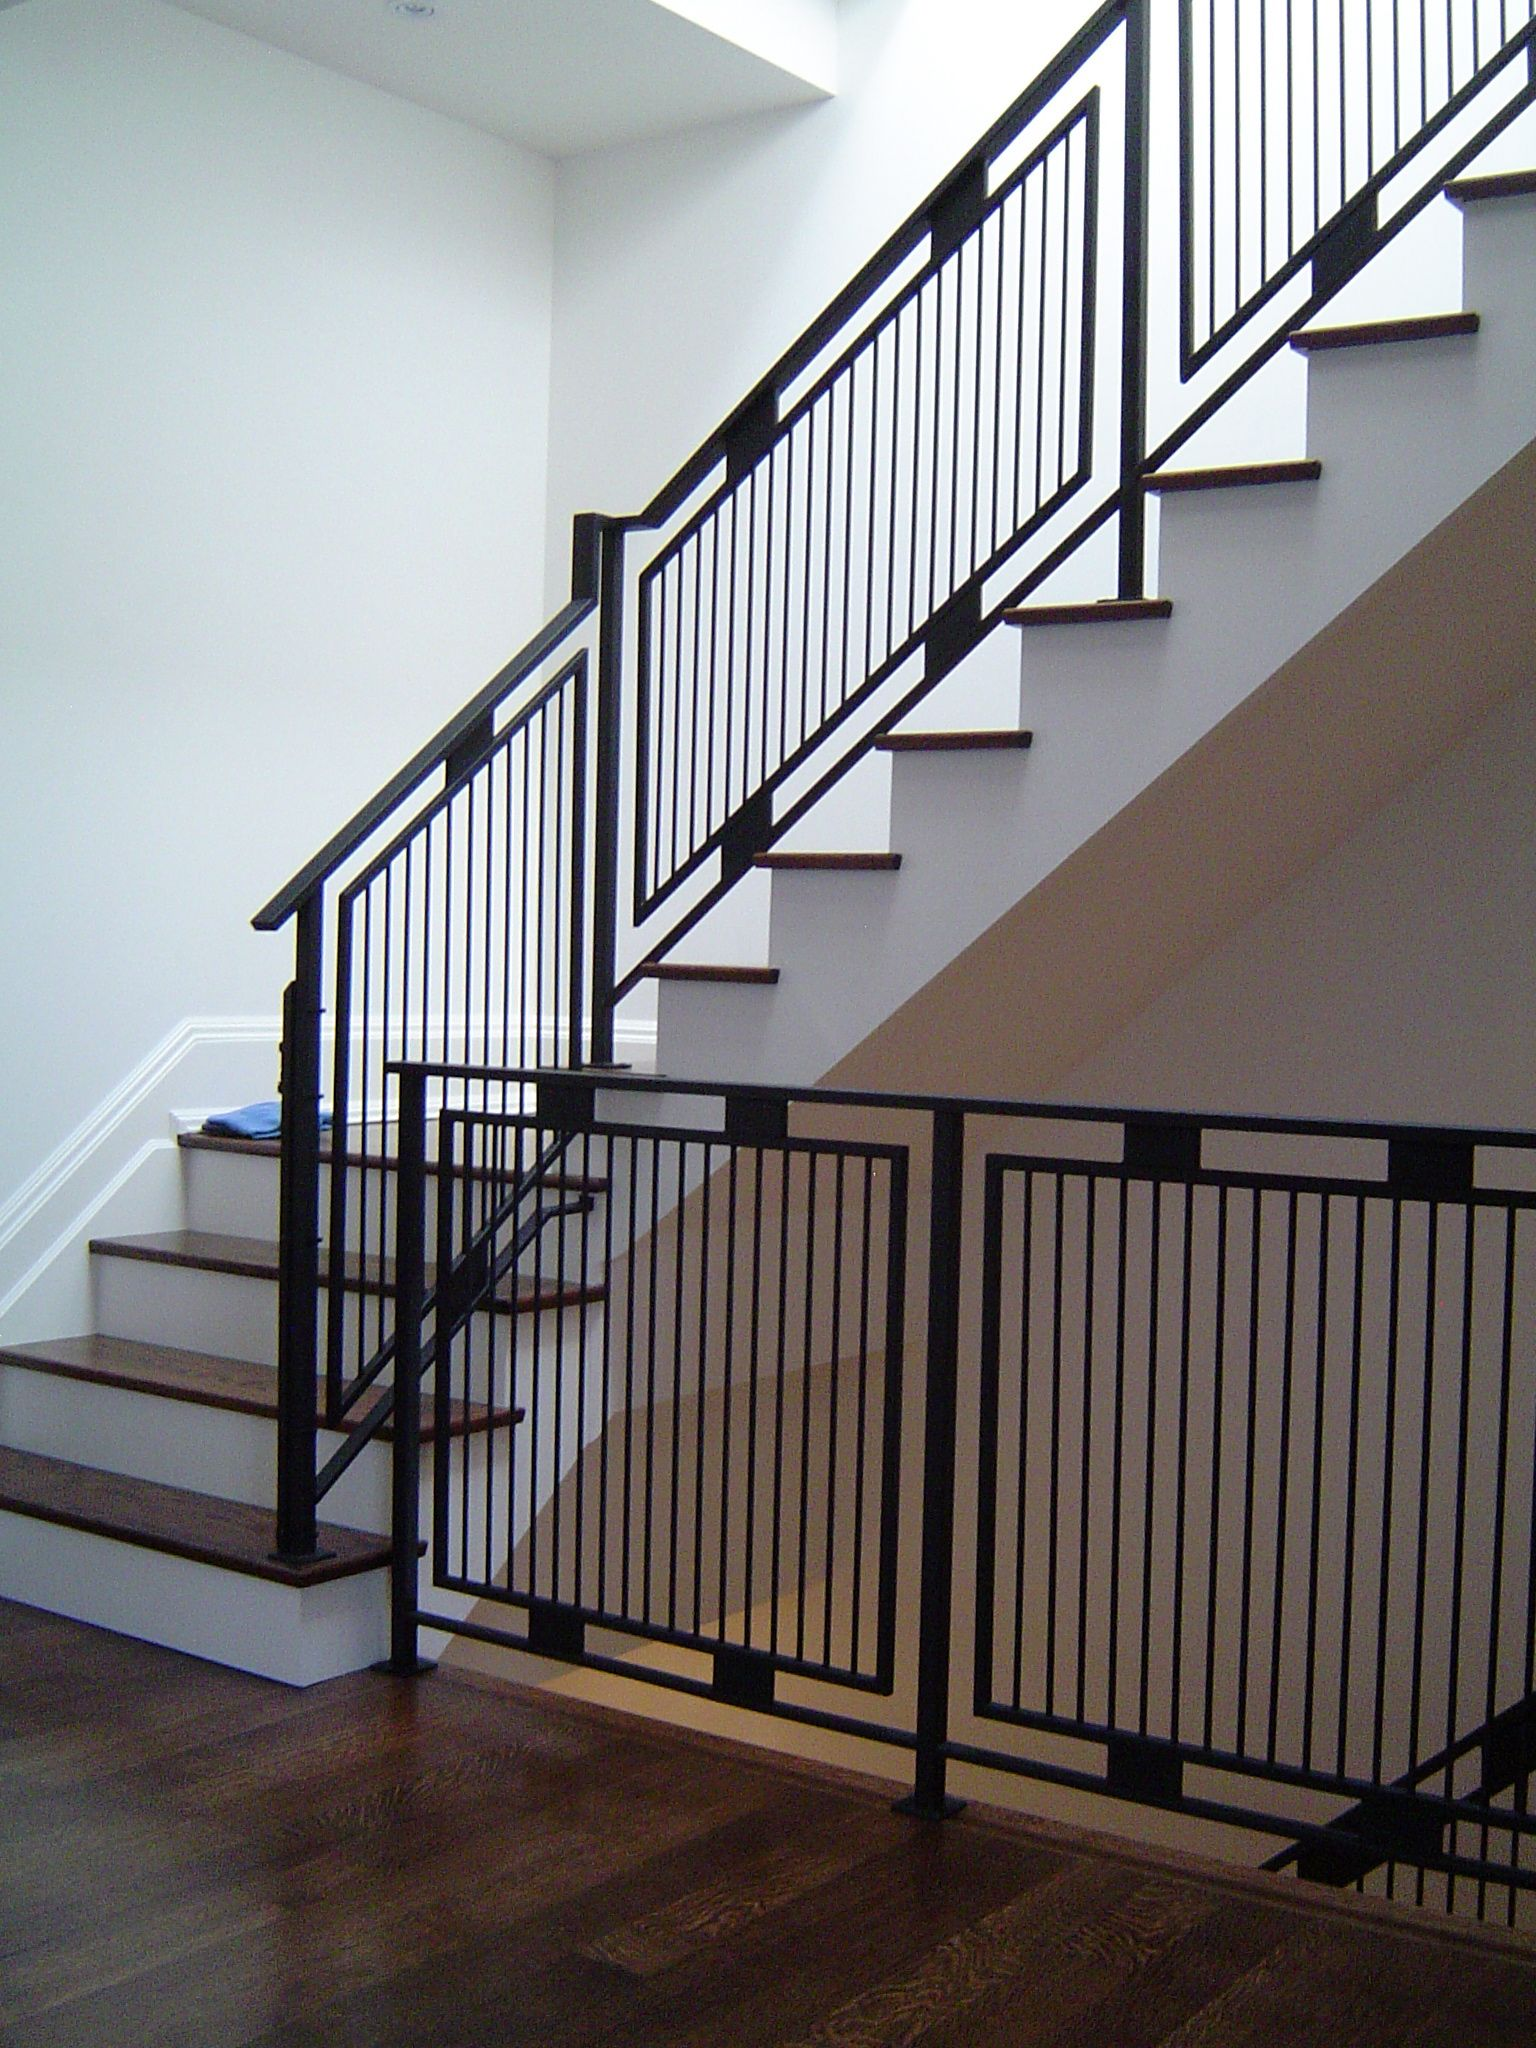 Best White Walls And Black Railing Www Thesteelworks Ca 640 x 480